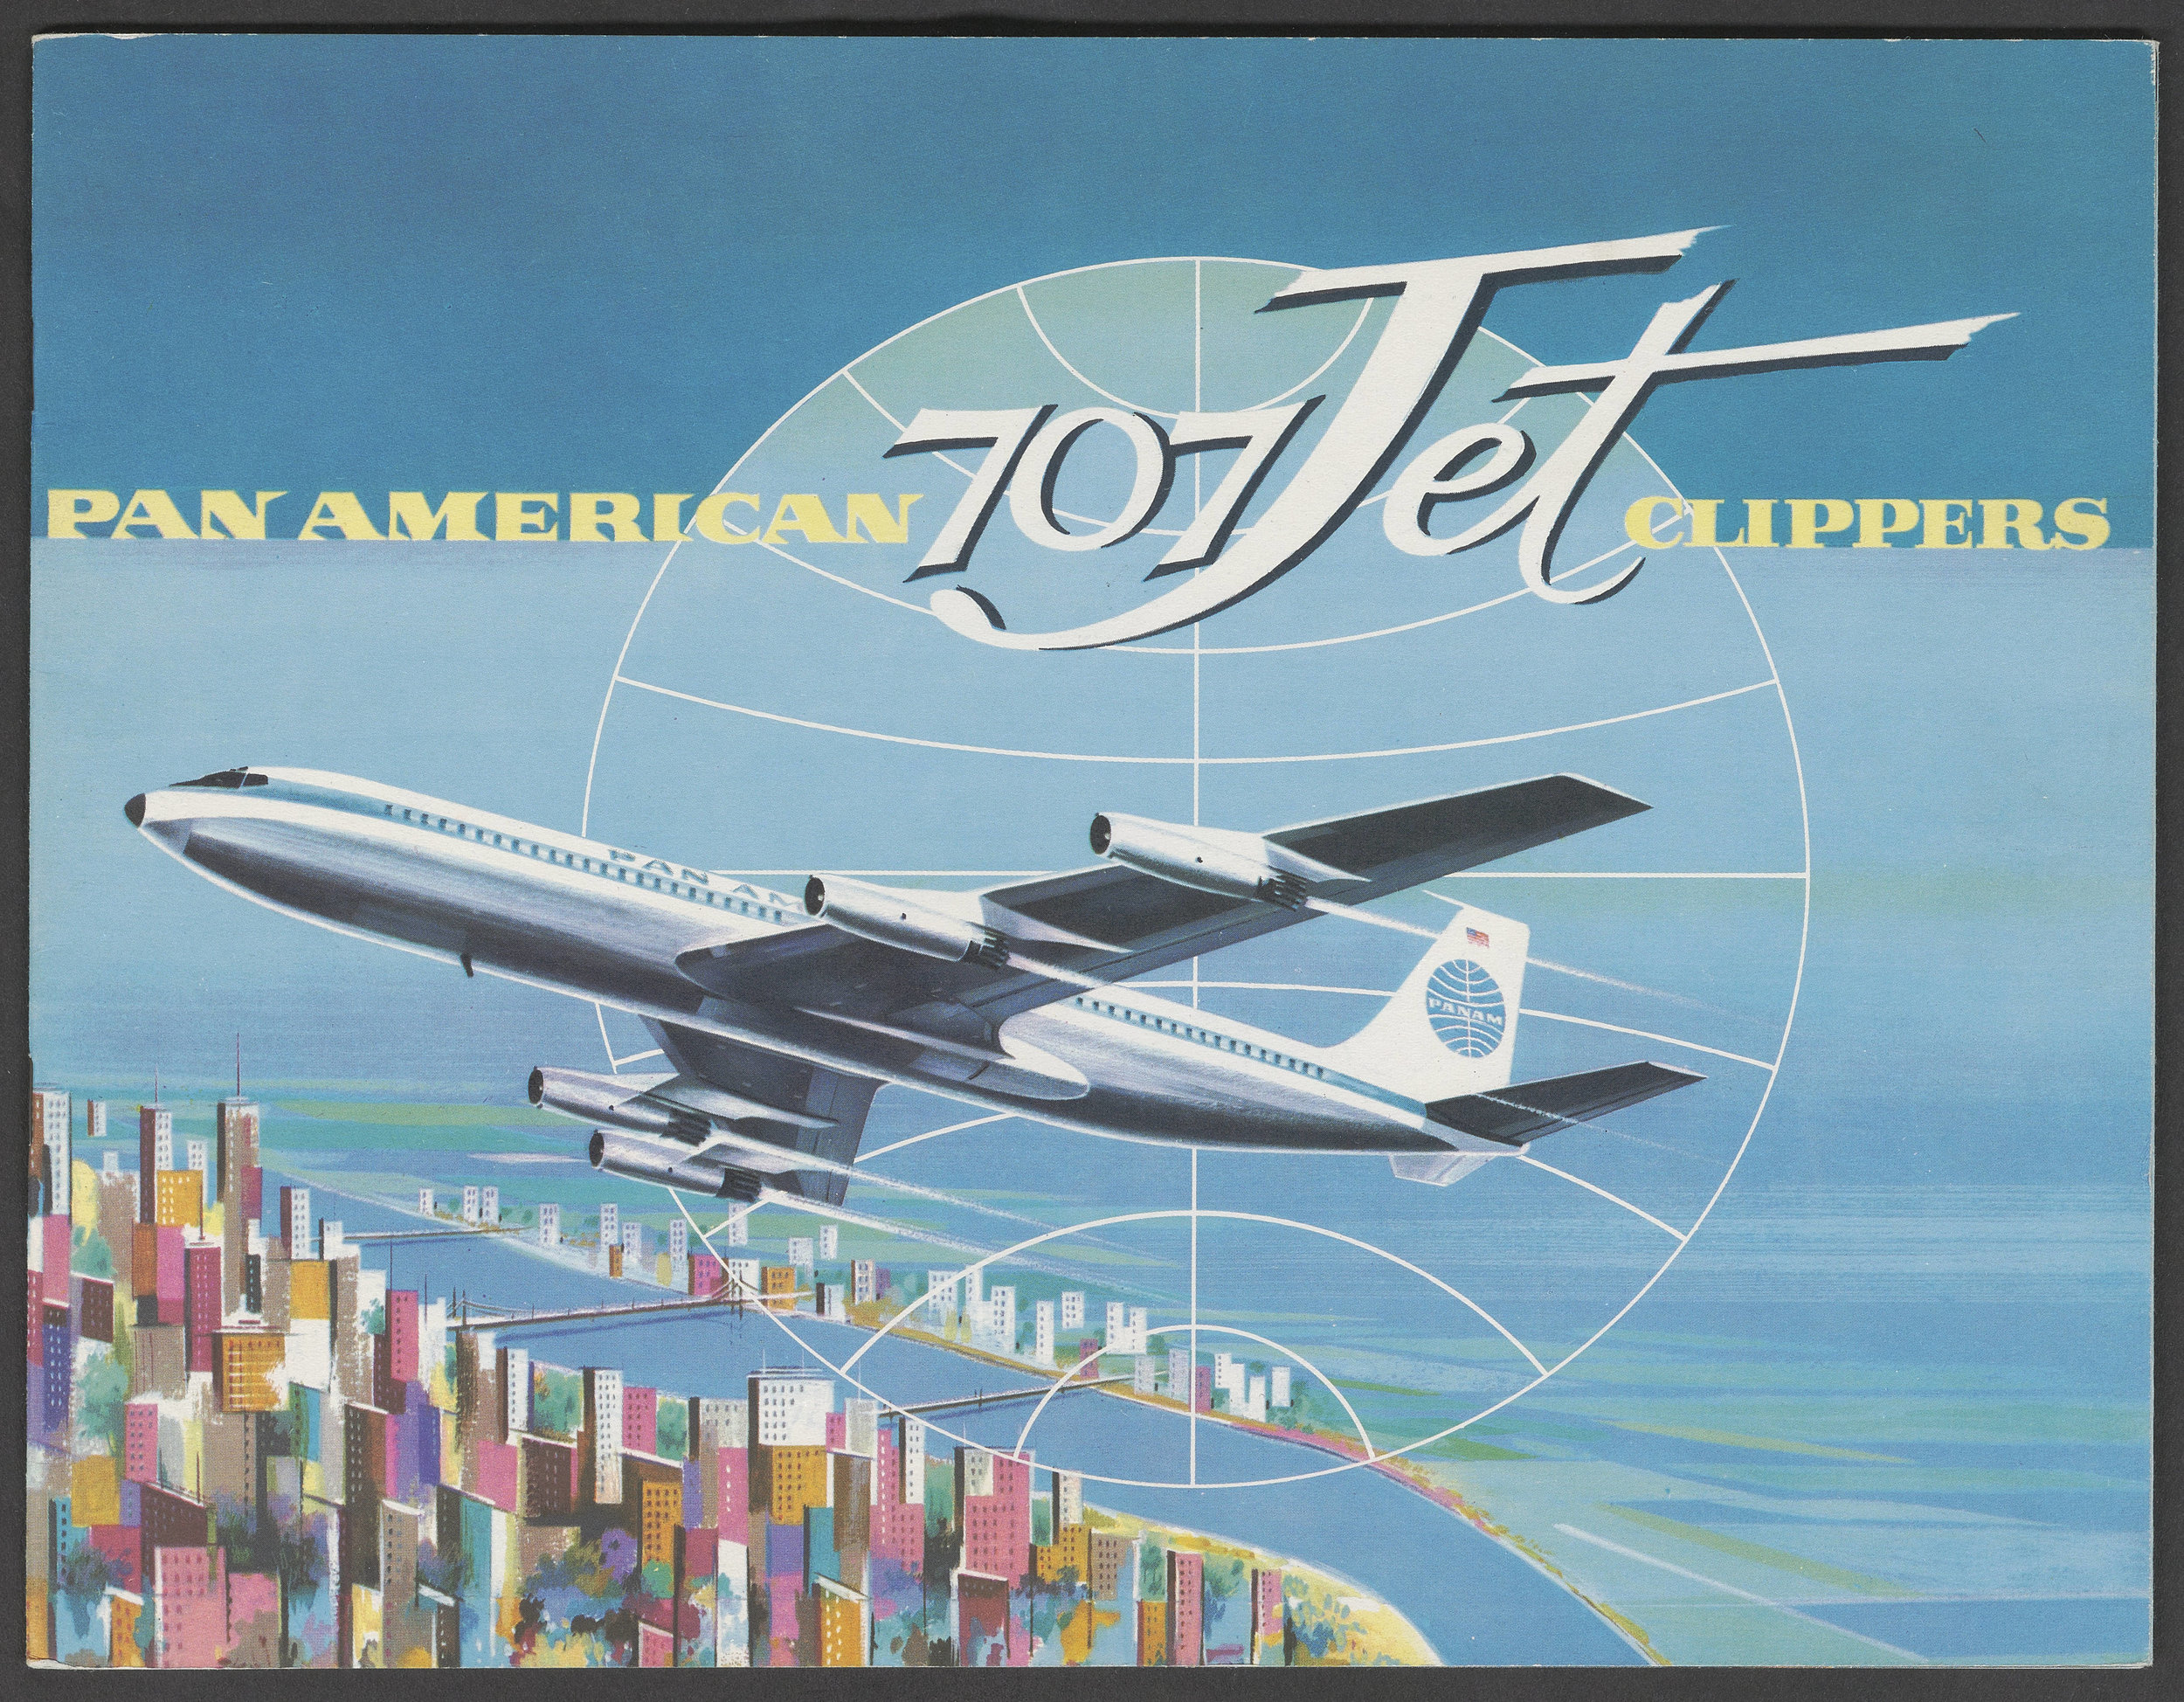 Pan American 707 Jet Clippers brochure cover.